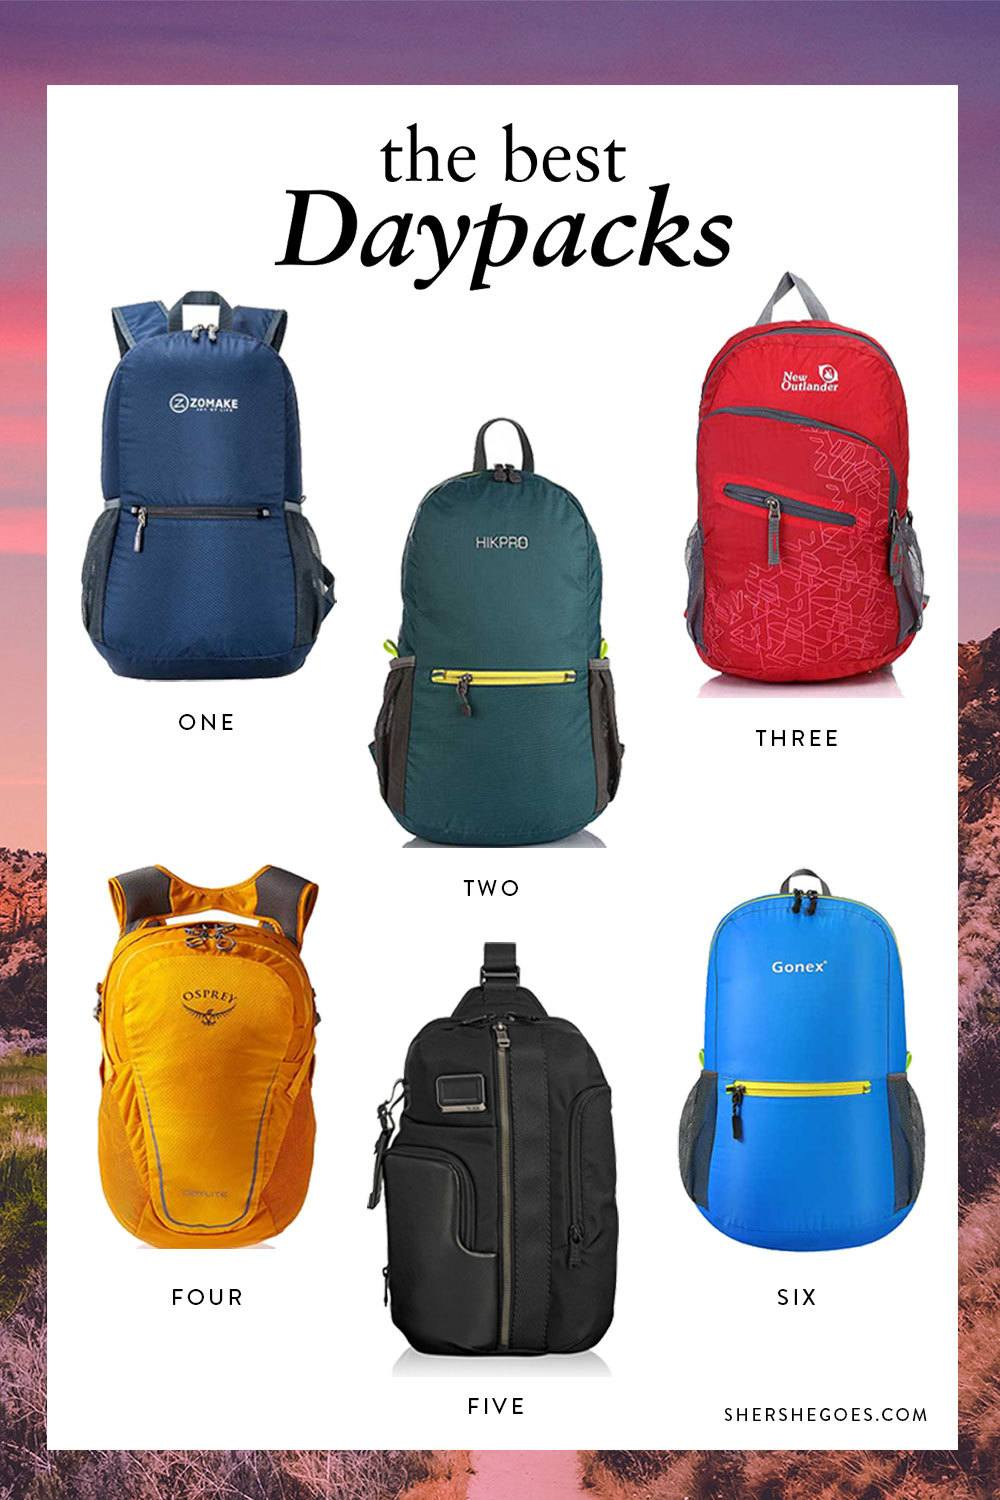 The Best Daypacks for Travel